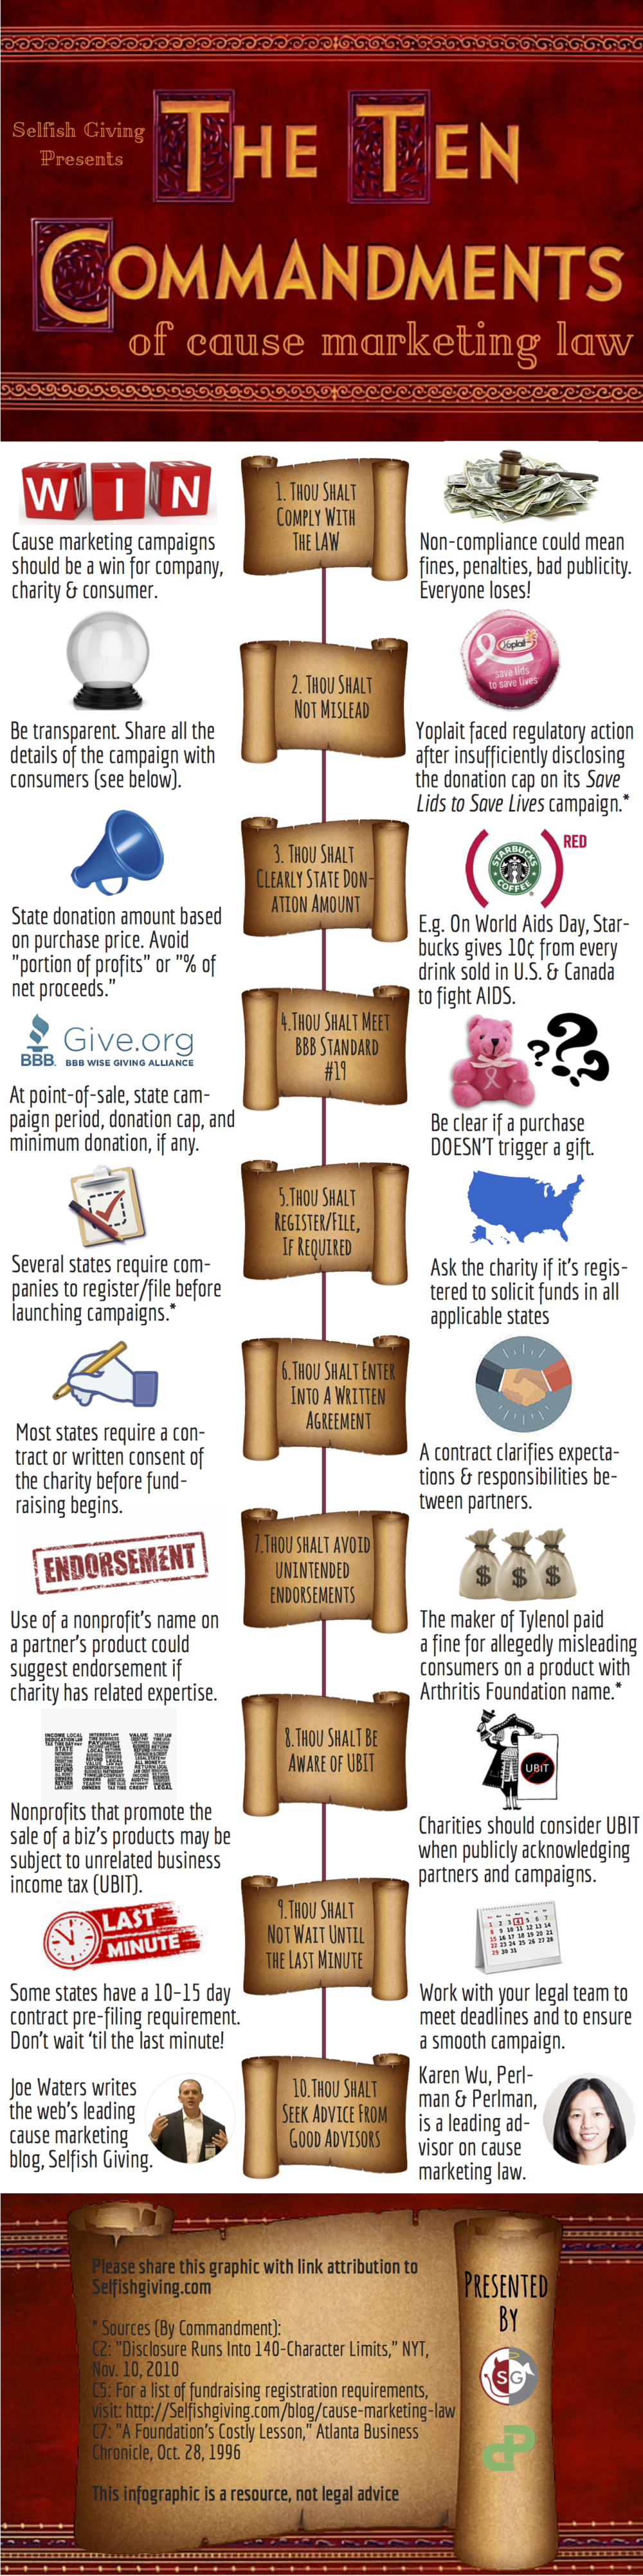 10 Commandment of Cause Marketing Law Infographic